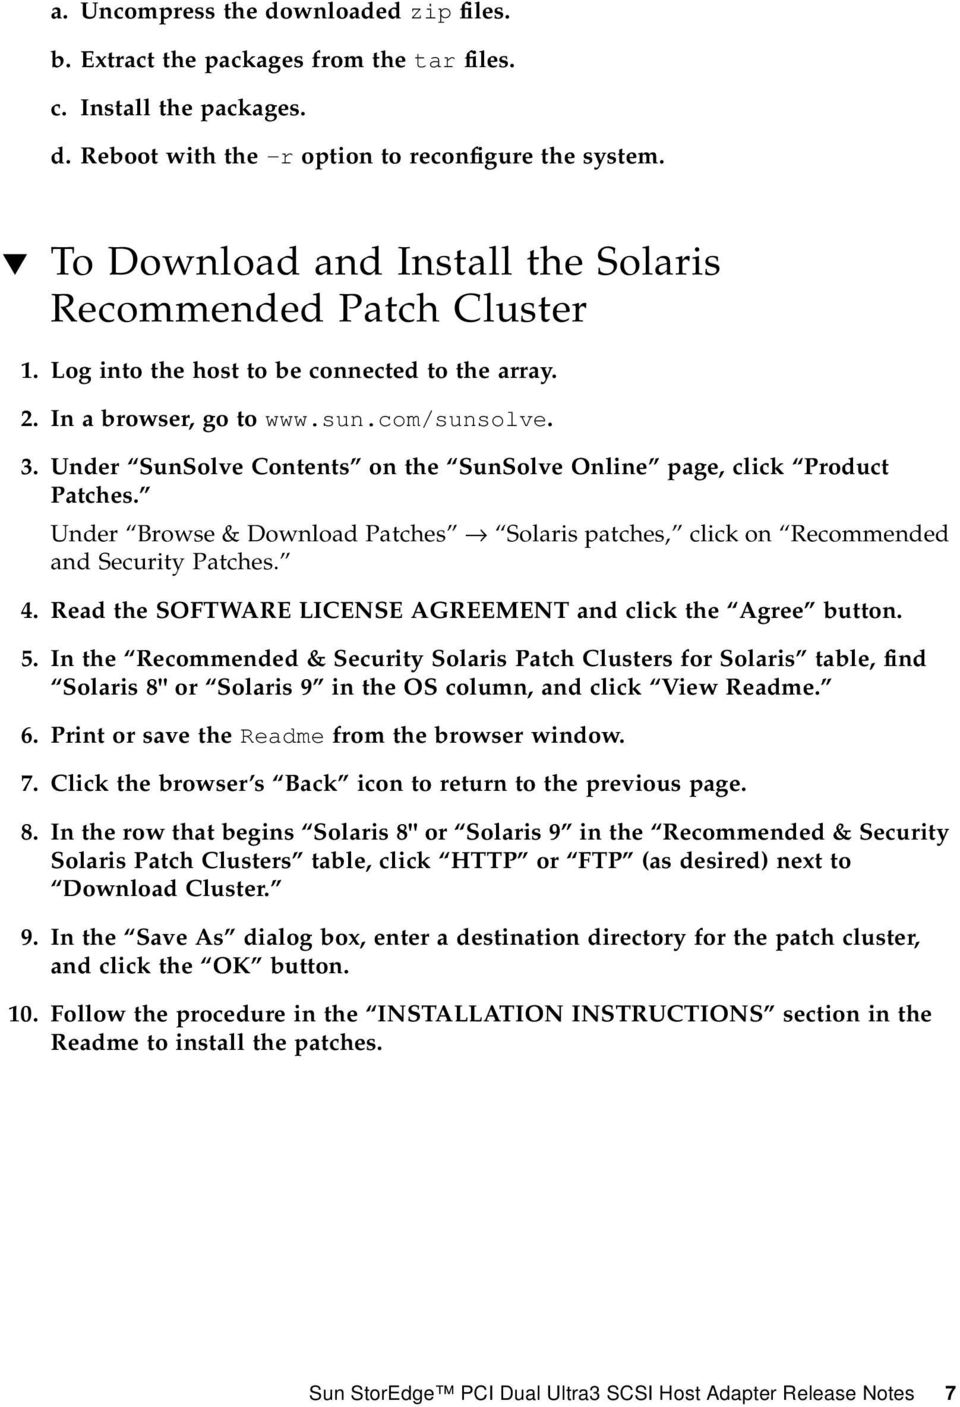 Download solaris patch cluster.